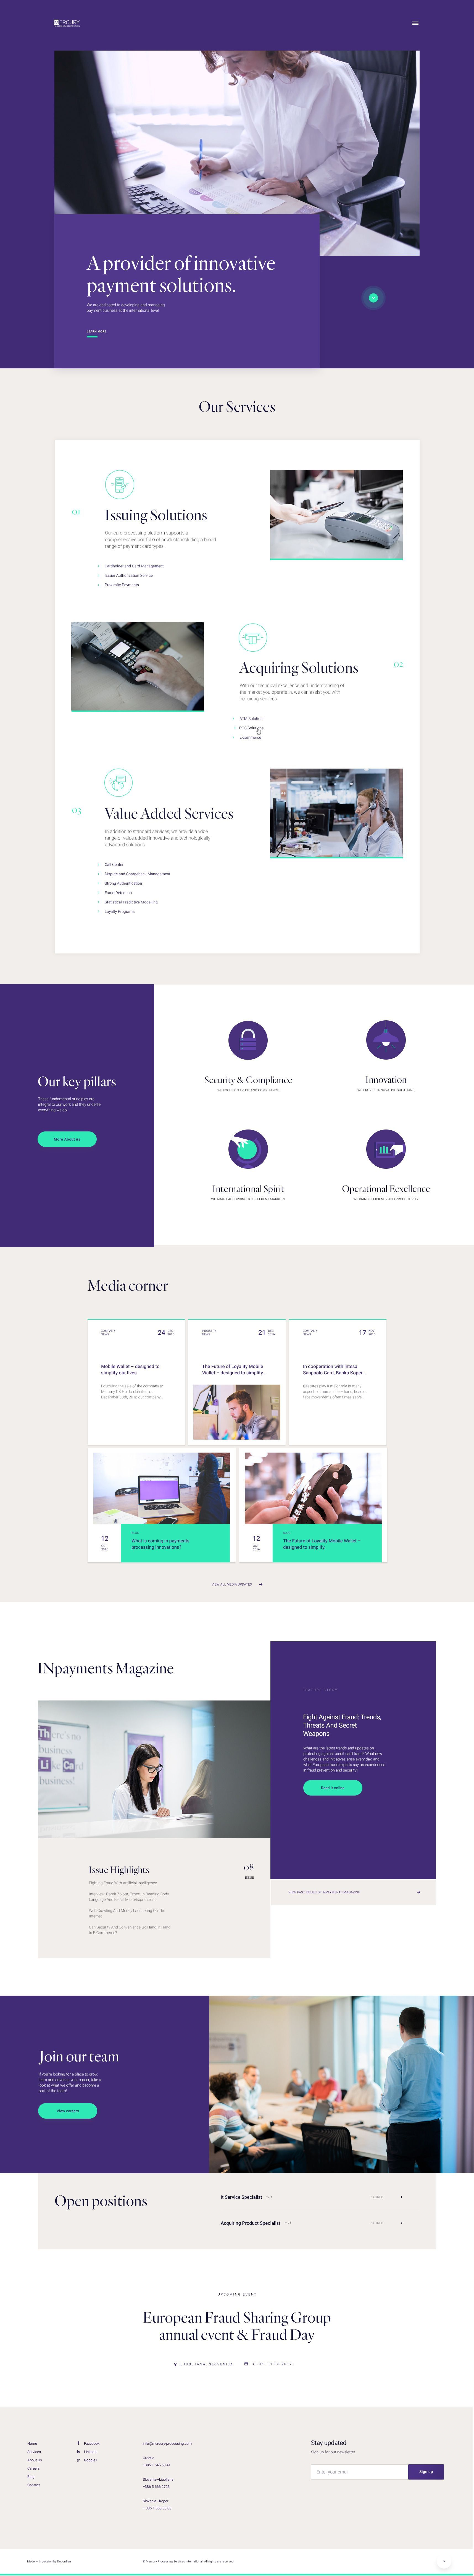 Pin On Inspire Design Ui Ux And Web Design Inspirations